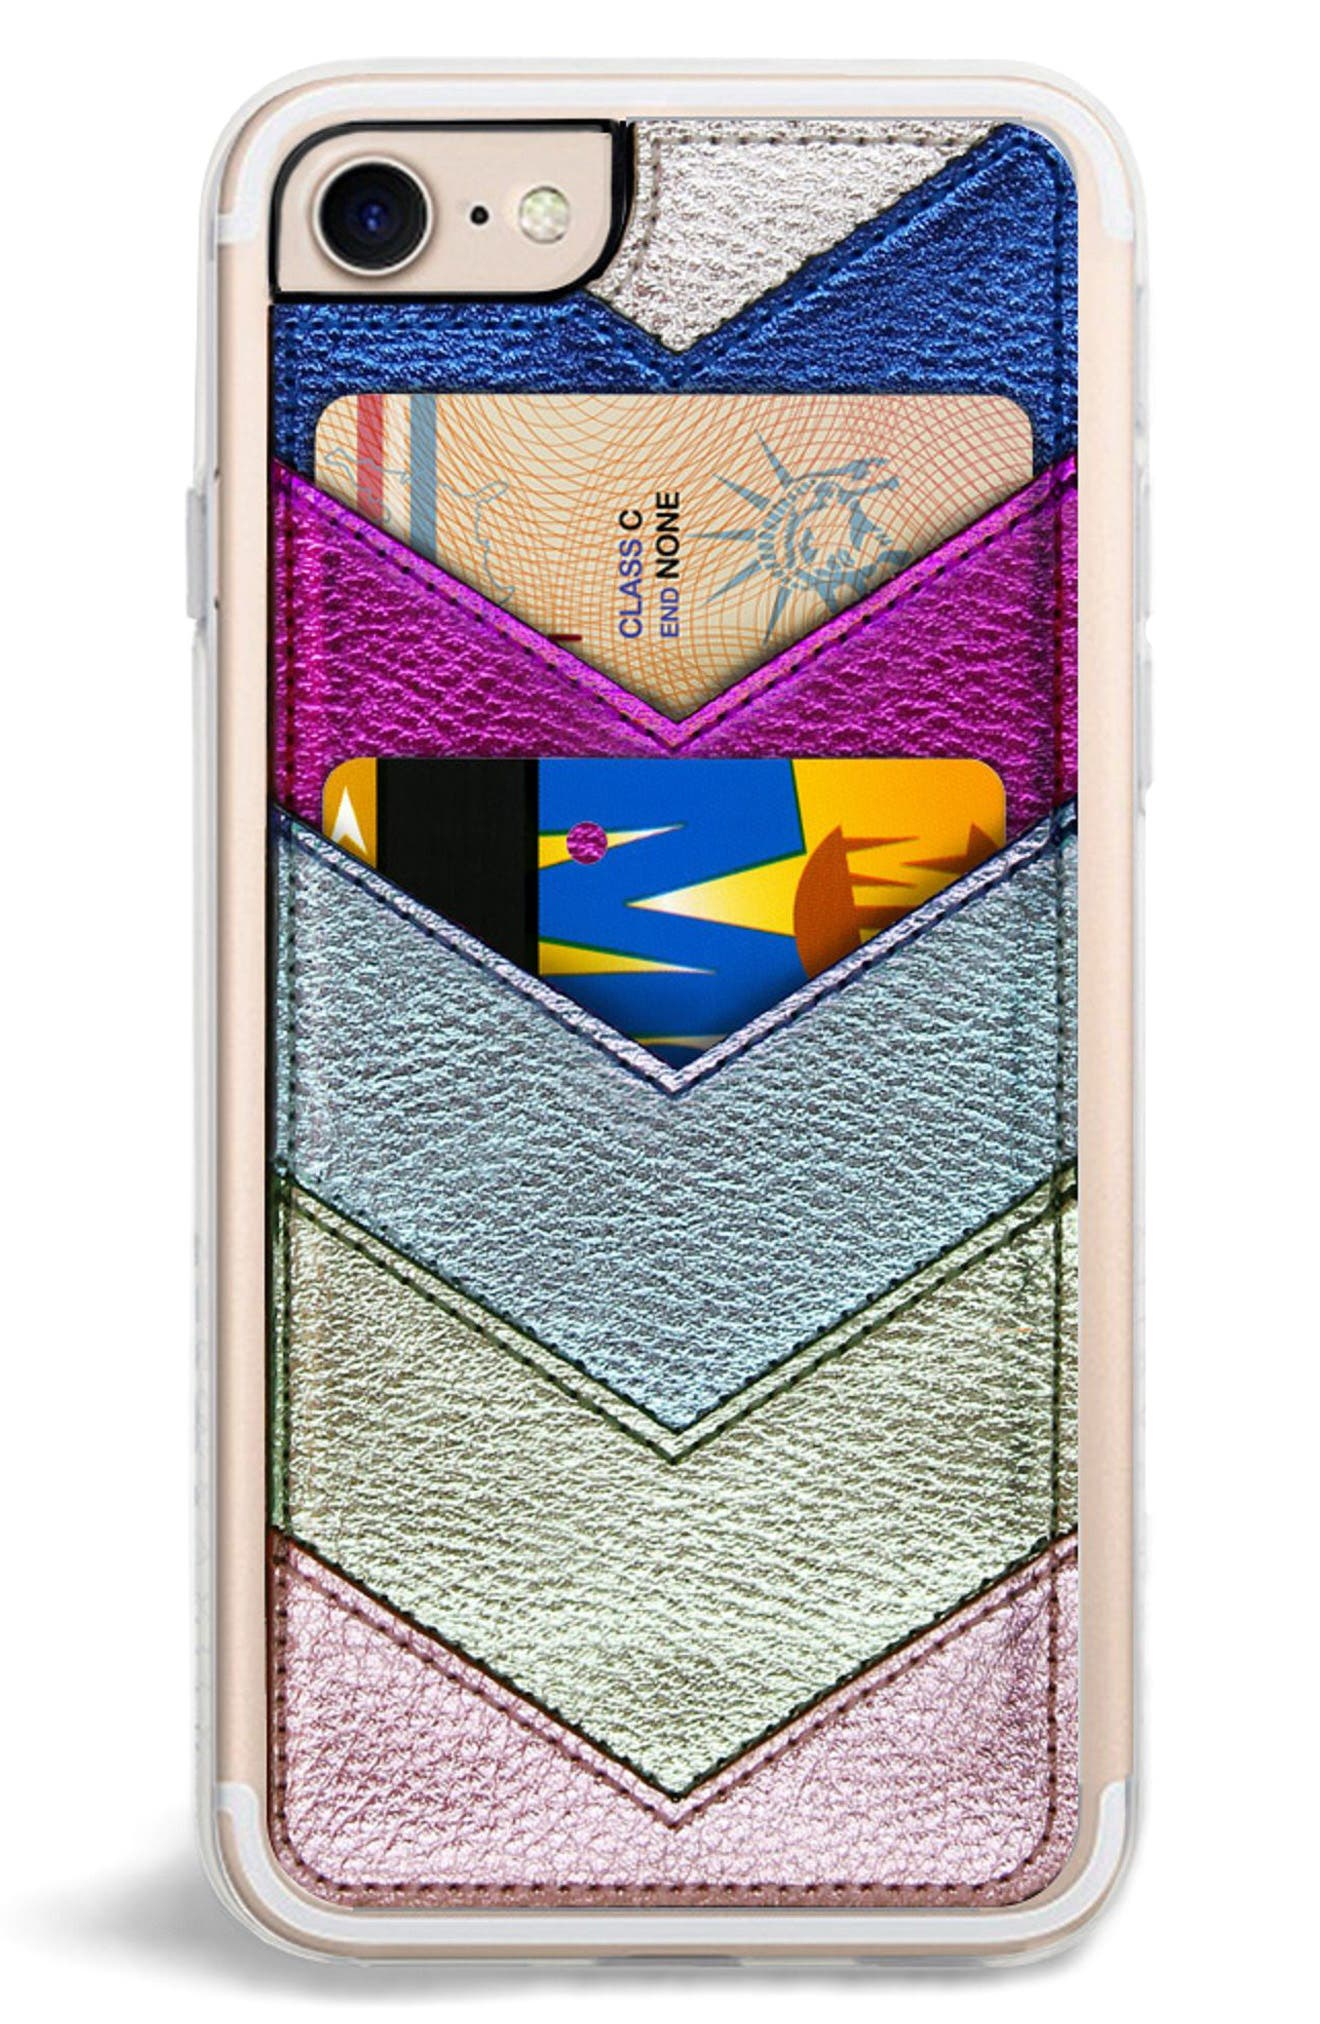 Zero Gravity Chevron Faux Leather iPhone 6/6s/7/8 & 6/6s/7/8 Plus Case (Nordstrom Exclusive)